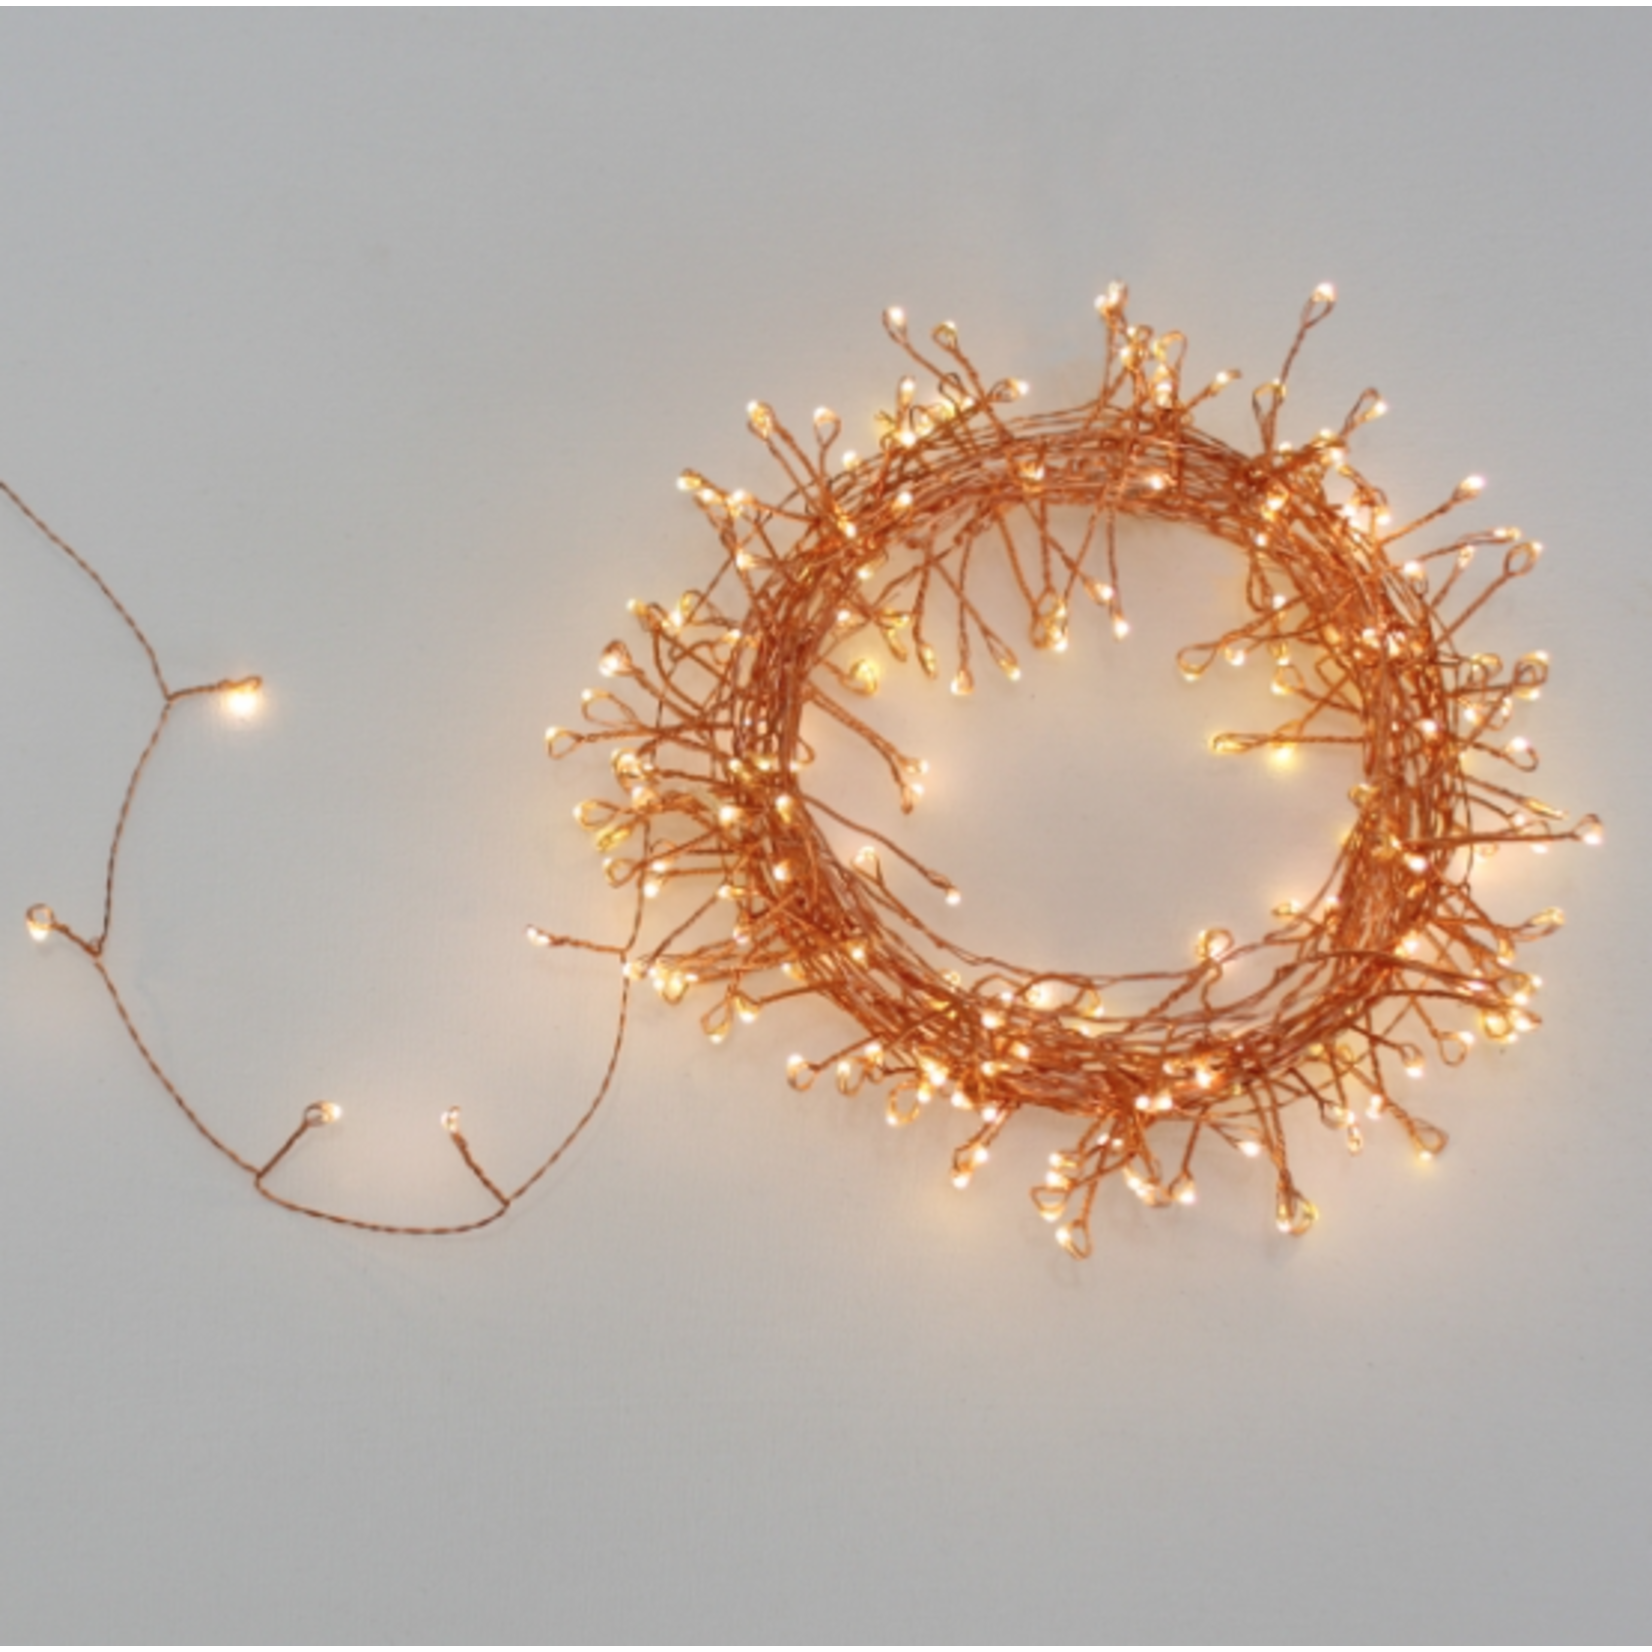 Light Style London Cluster Copper 15m Fairy Lights Indoor & outdoor use